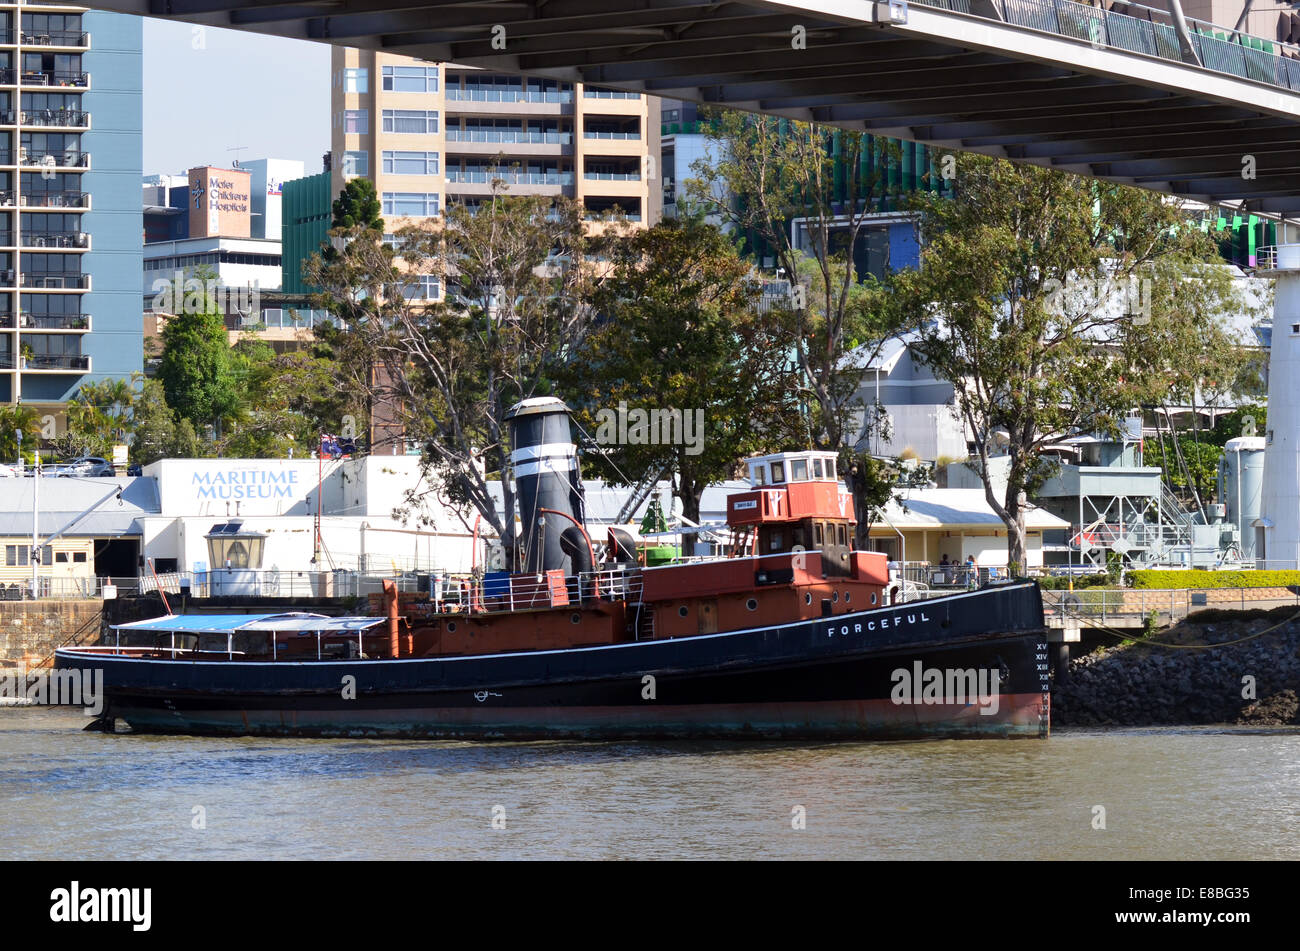 BRISBANE, AUS - SEP 25 2014:Forceful, ocean-going tugboat, docked at the Queensland Maritime Museum.With wide range - Stock Image